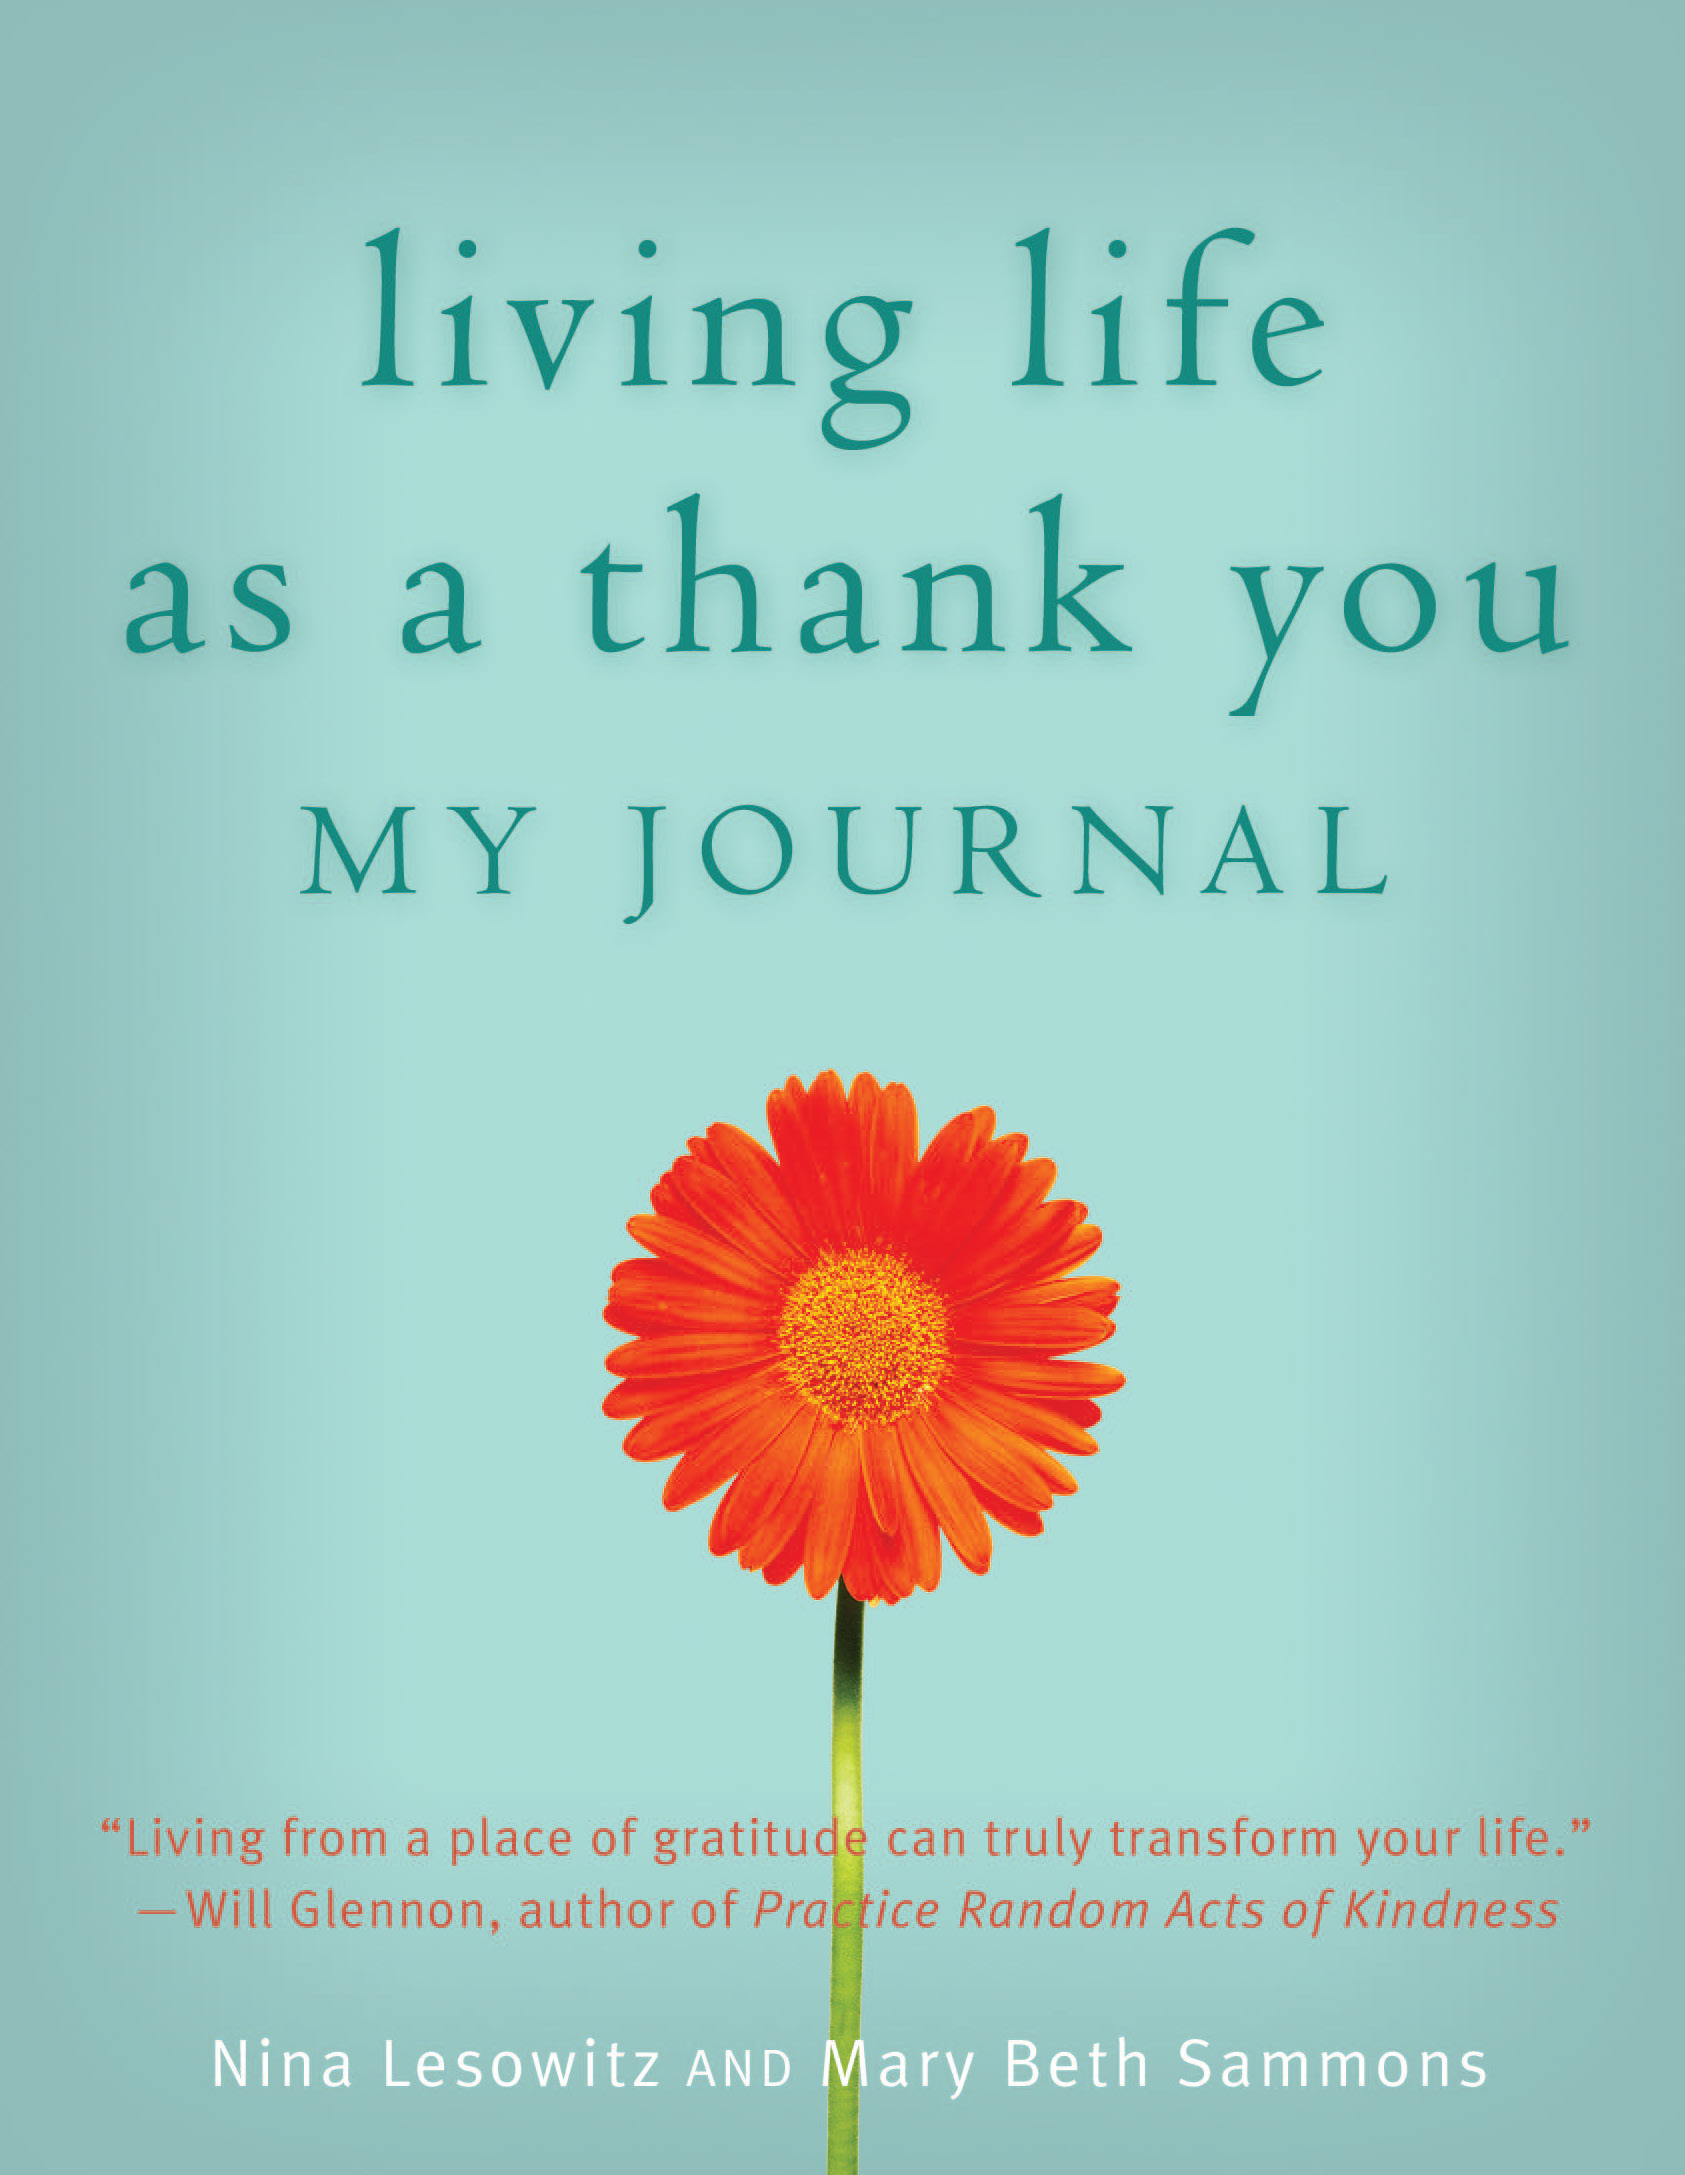 Living Life as a Thank You Journal By: Mary Beth Sammons,Nina Lesowitz